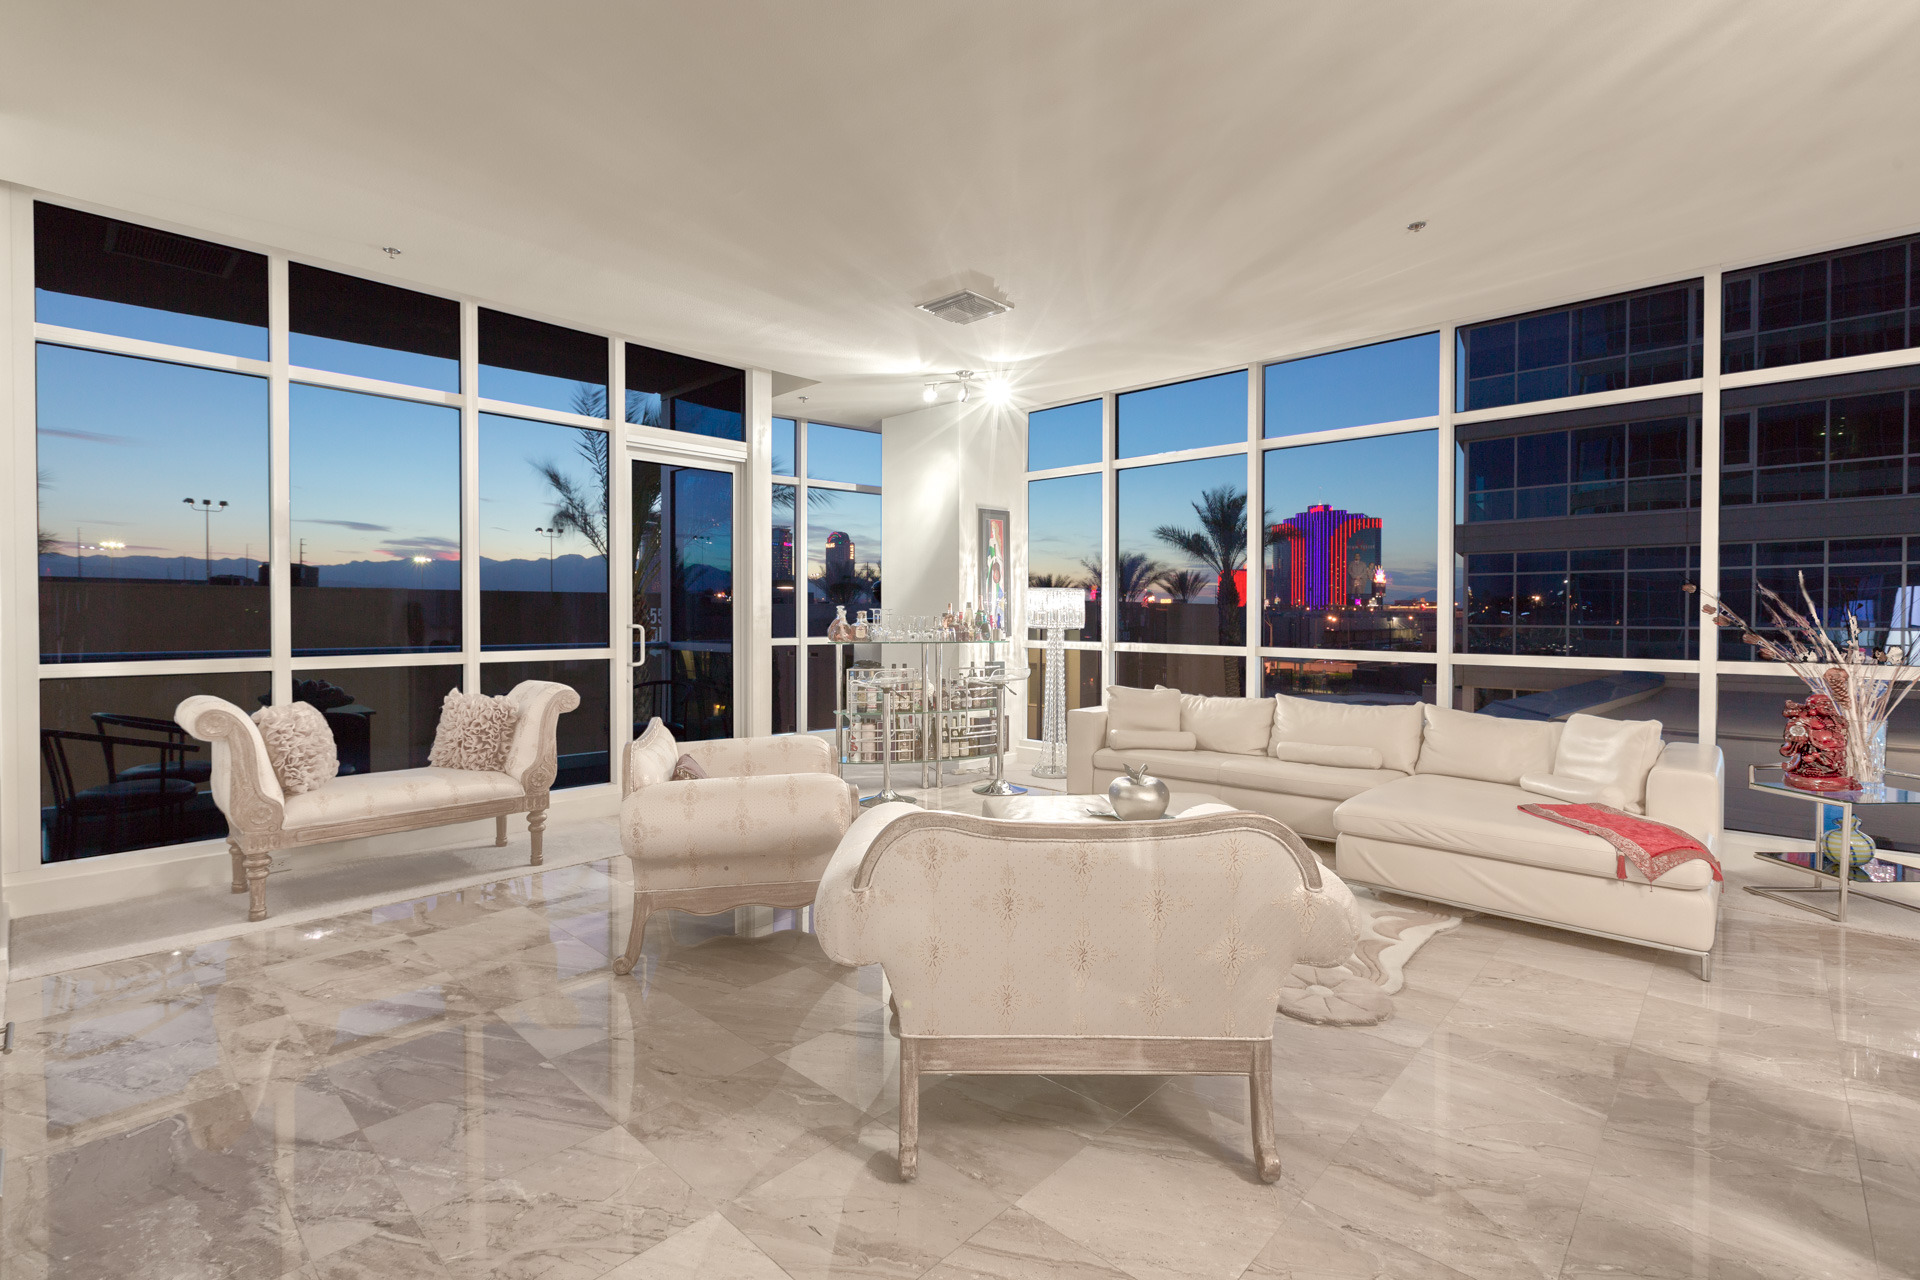 Livivn Room of # 307 in Tower 2 of Panorama Towers Las vegas Guard gated High Rise Condo Living Near the Strip.  702 236 8364.